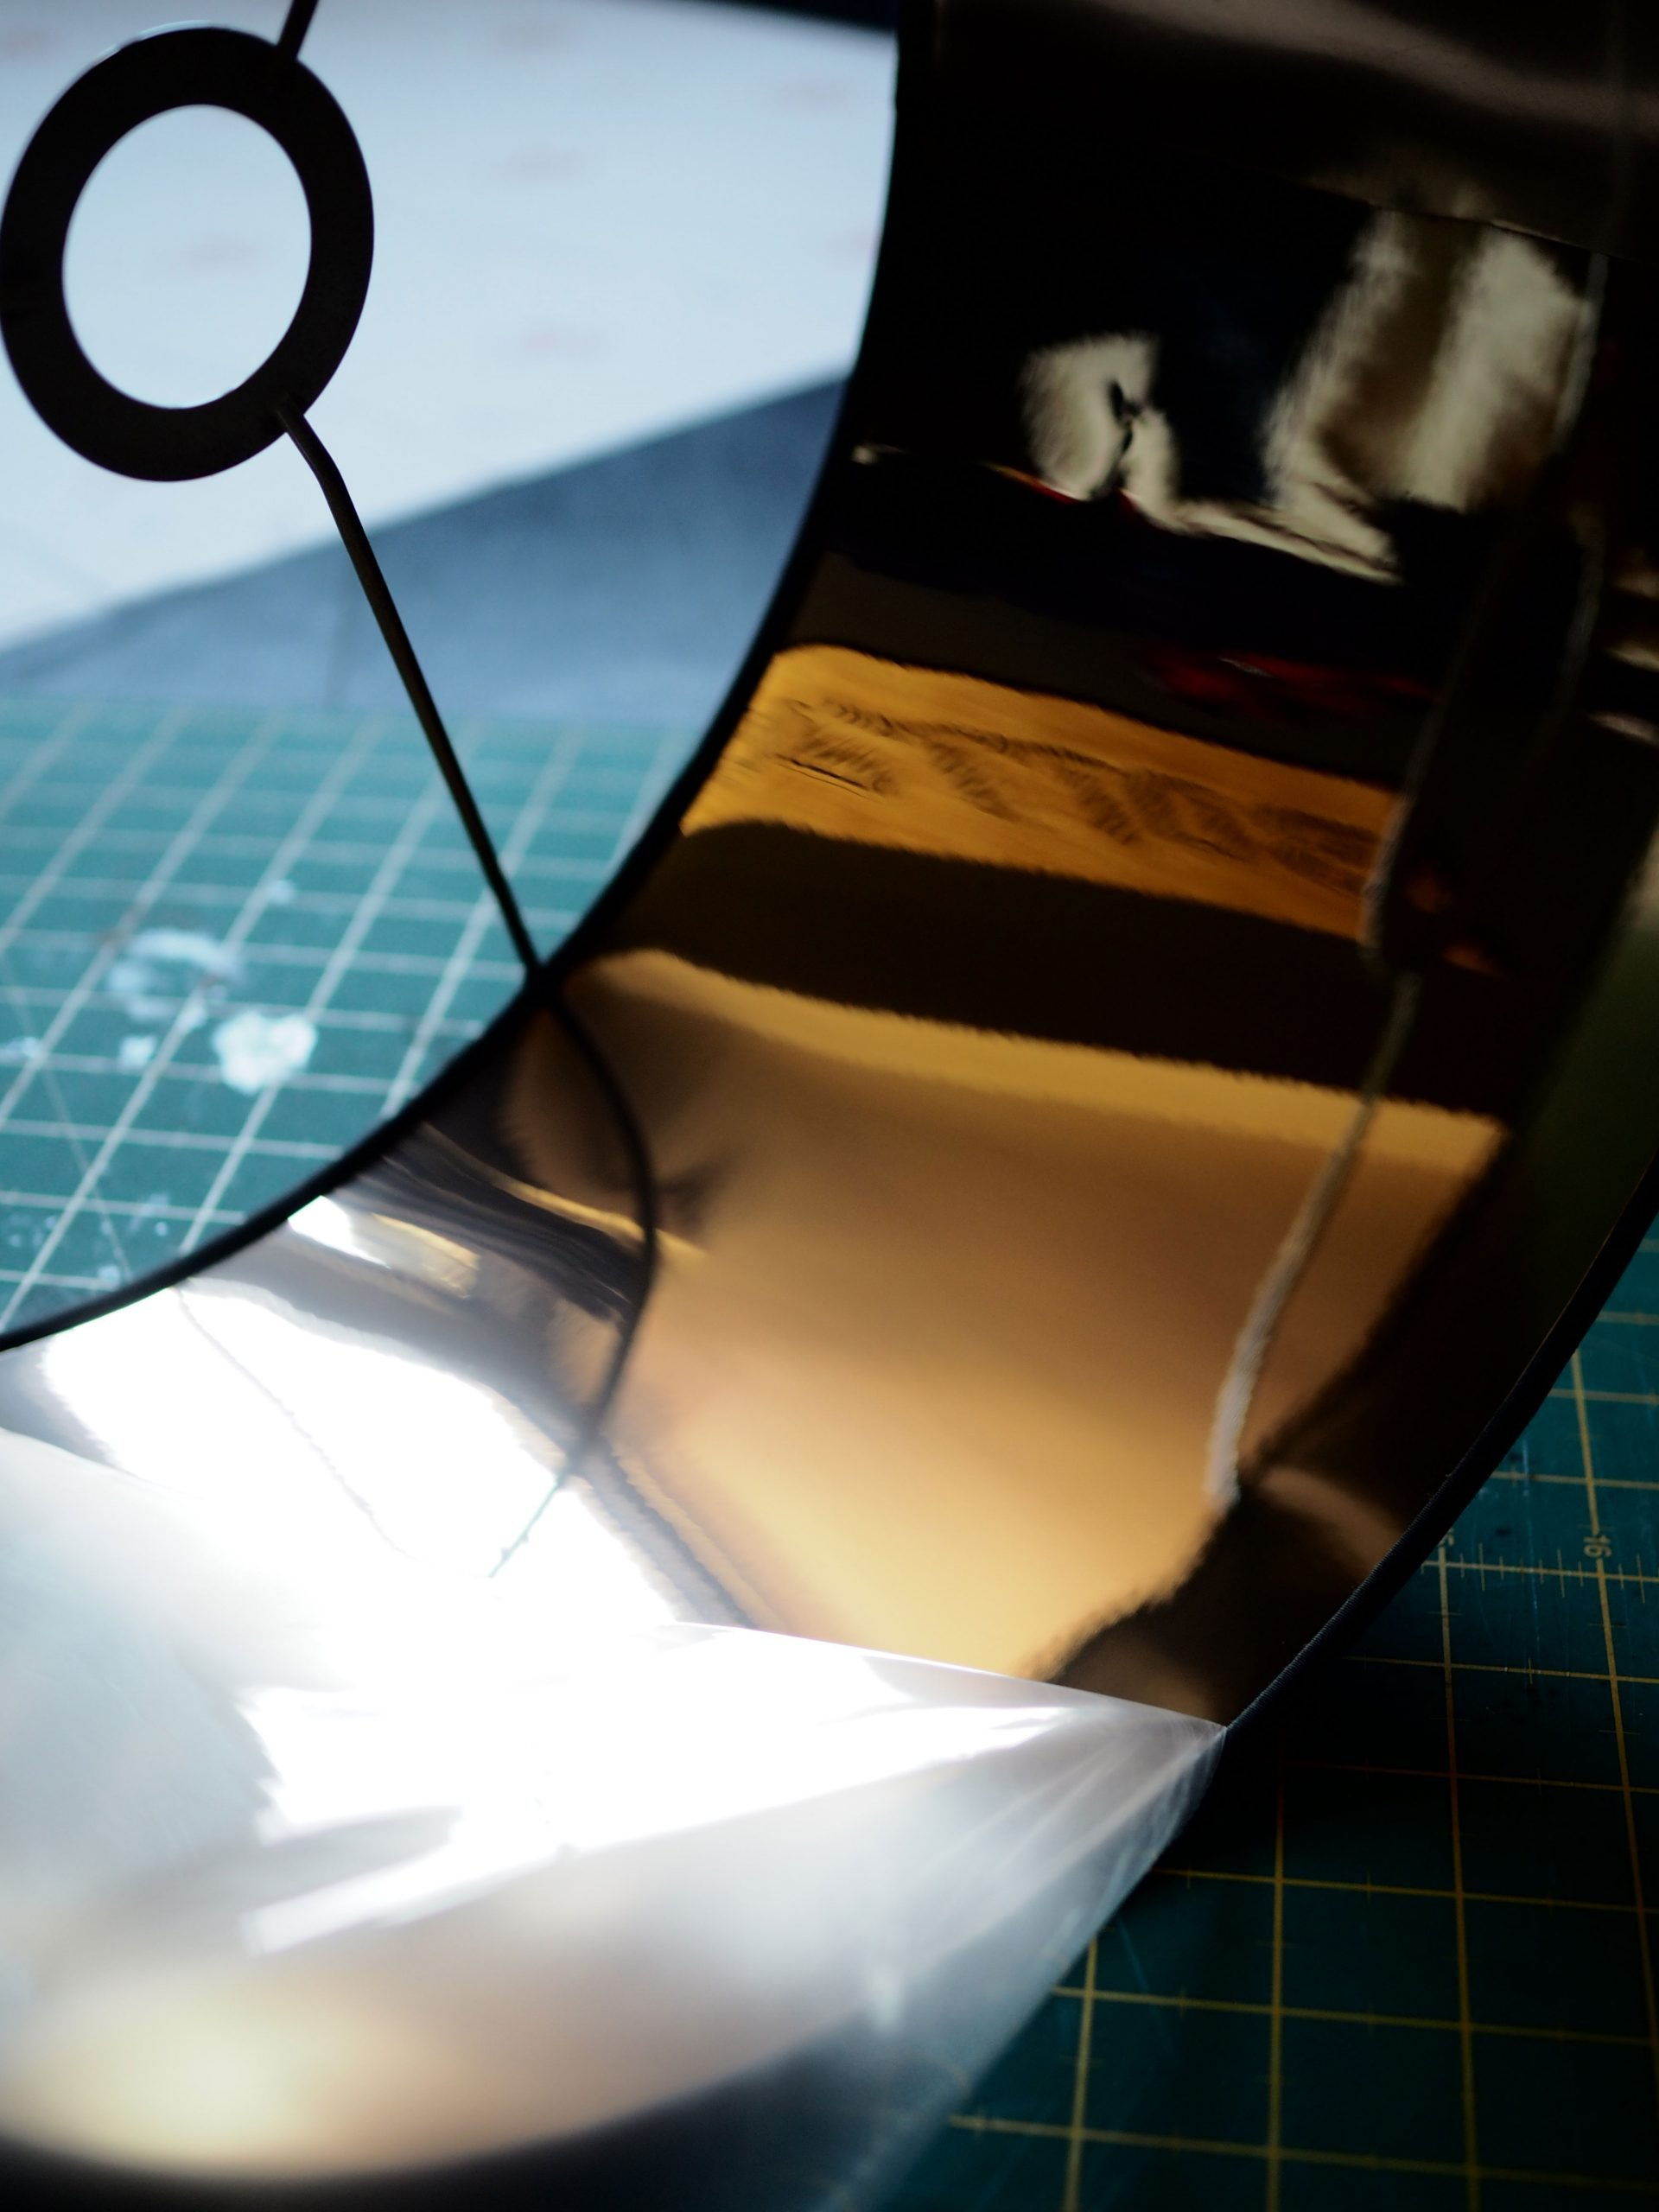 Removing the protective film from the gold lamp lining